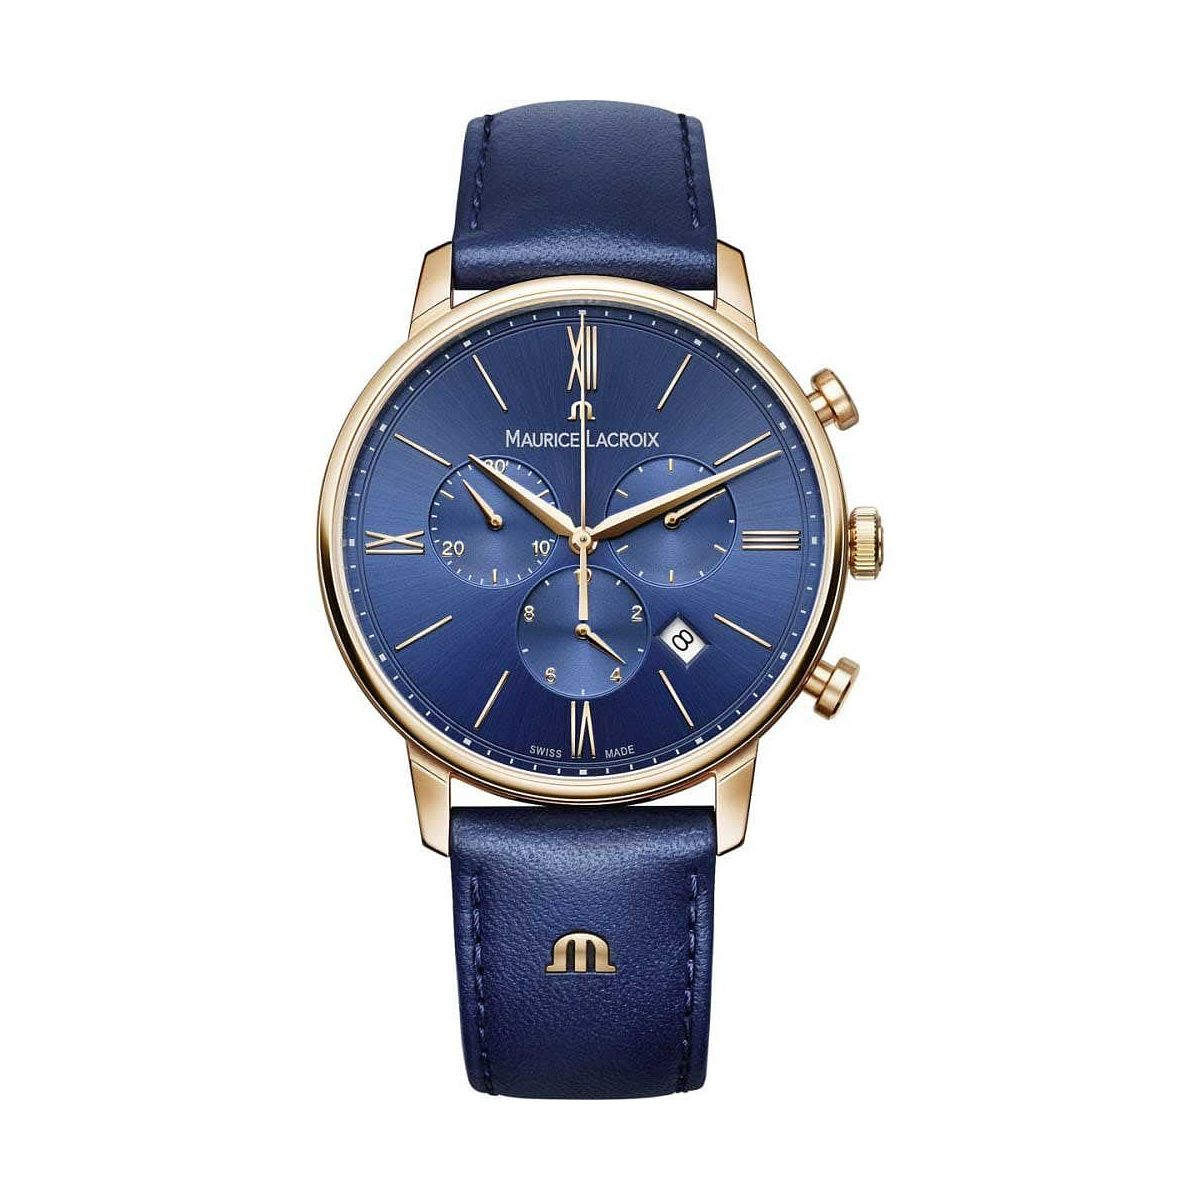 Maurice Lacroix Eliros Men's Blue Leather Strap Watch - Product number 1198416